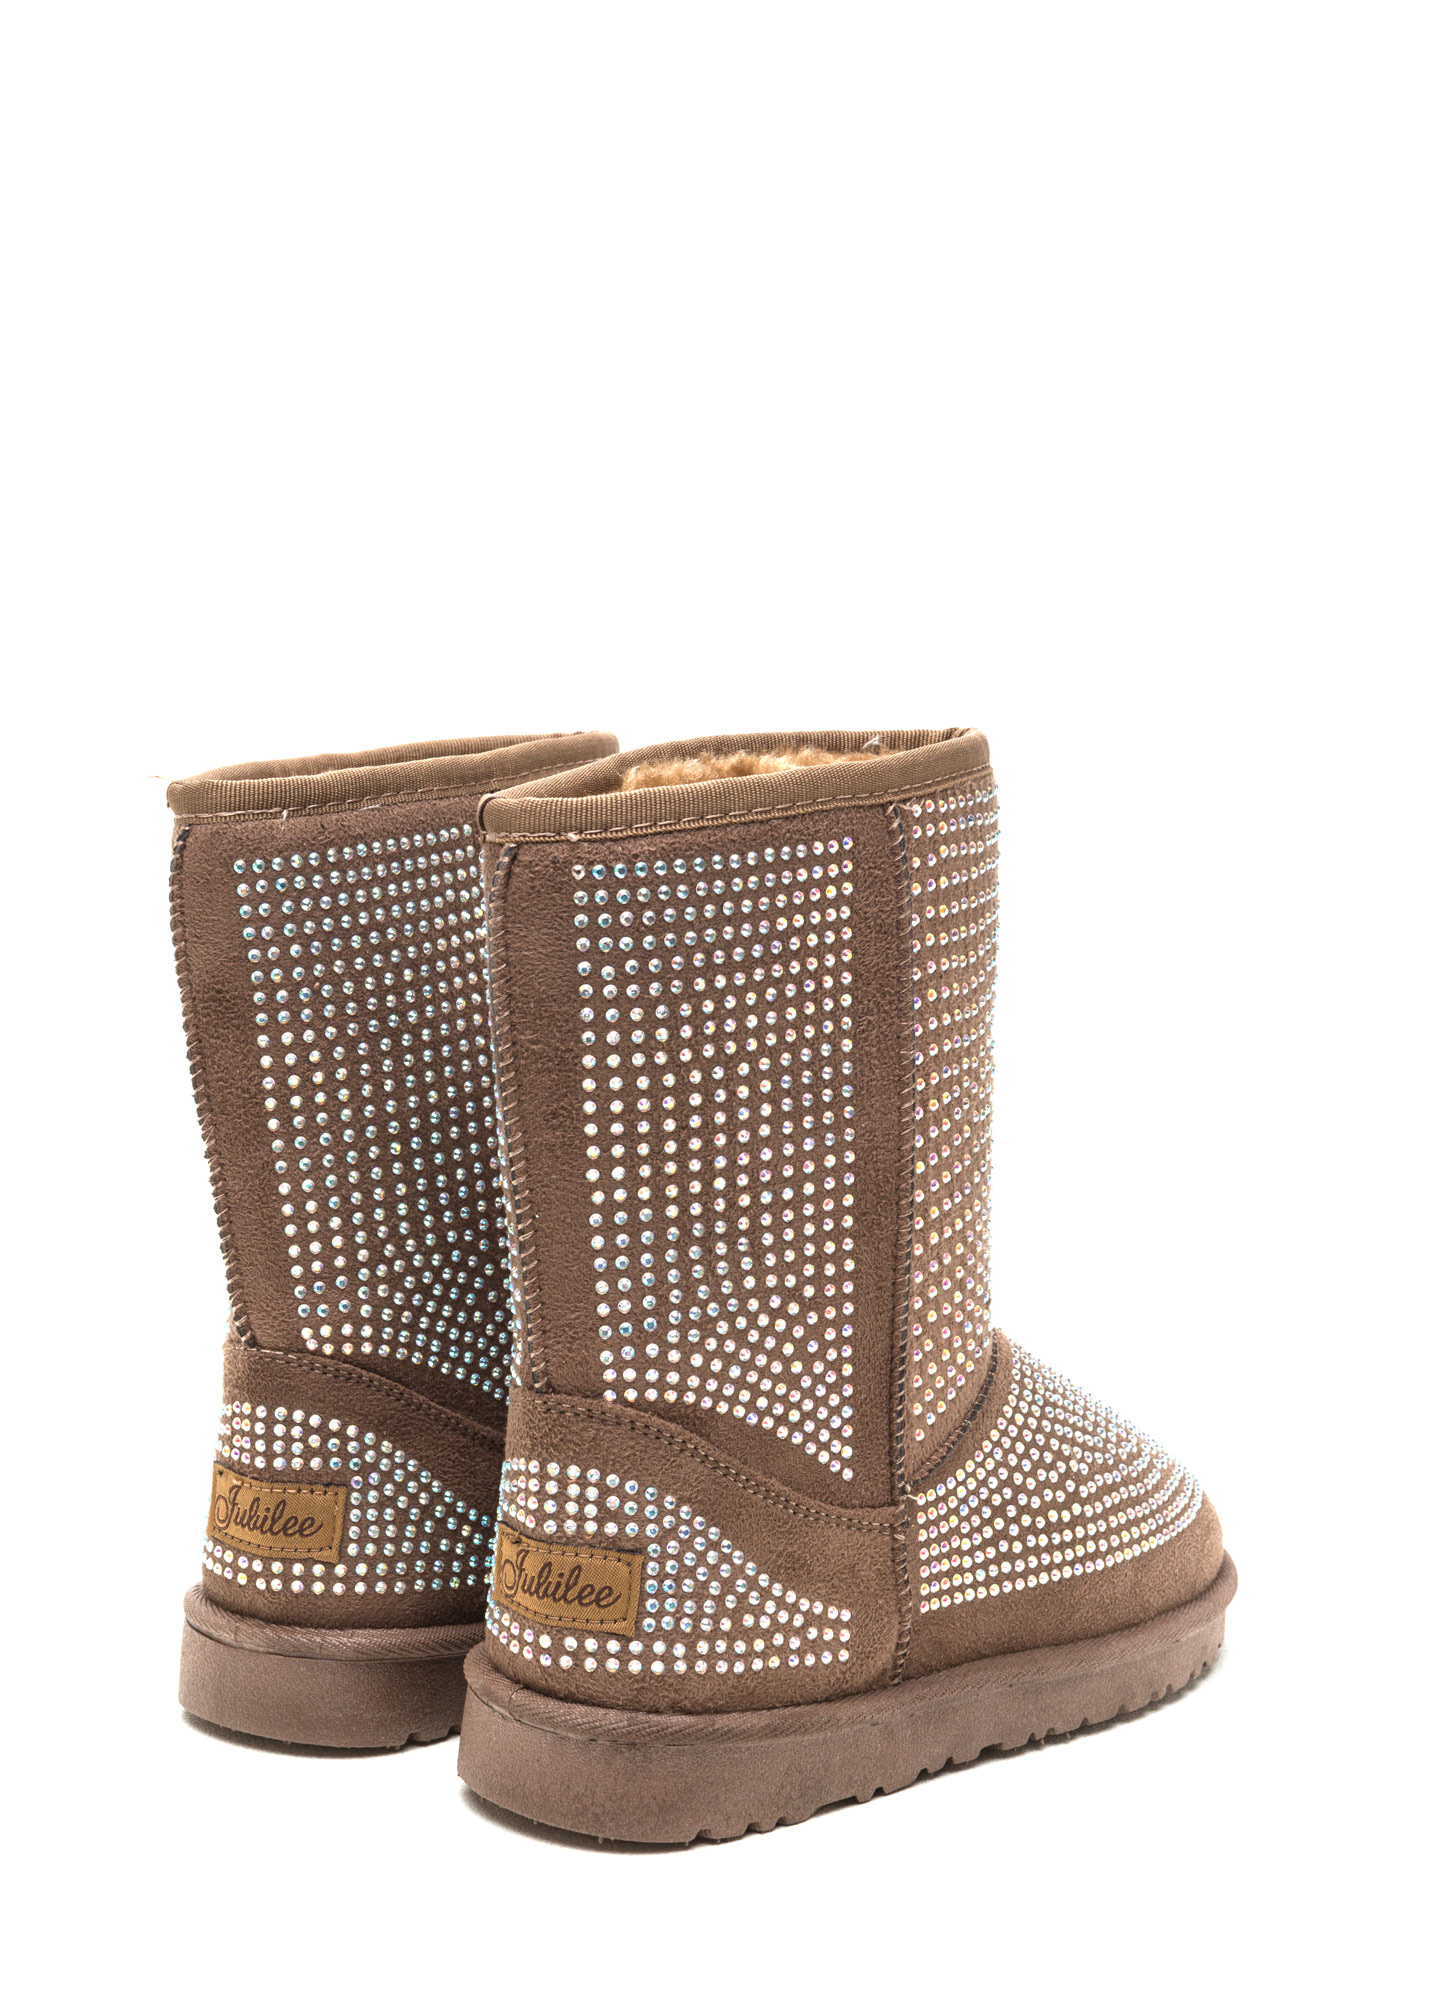 Rhinestone Ready Faux Suede Boots TAUPE